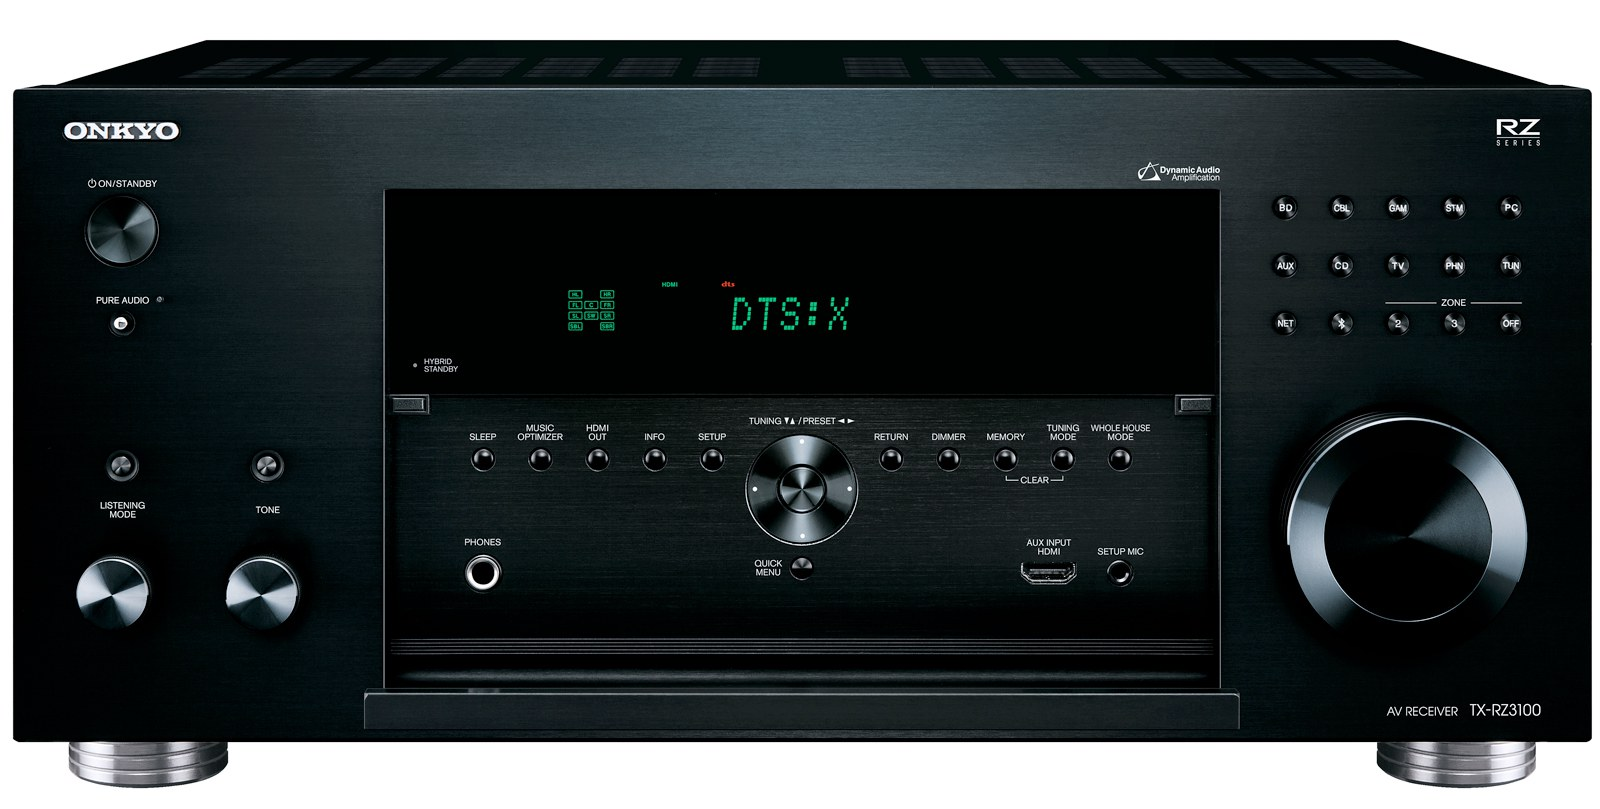 Onkyo TX-RZ3100 11.2 THX Select2 Plus